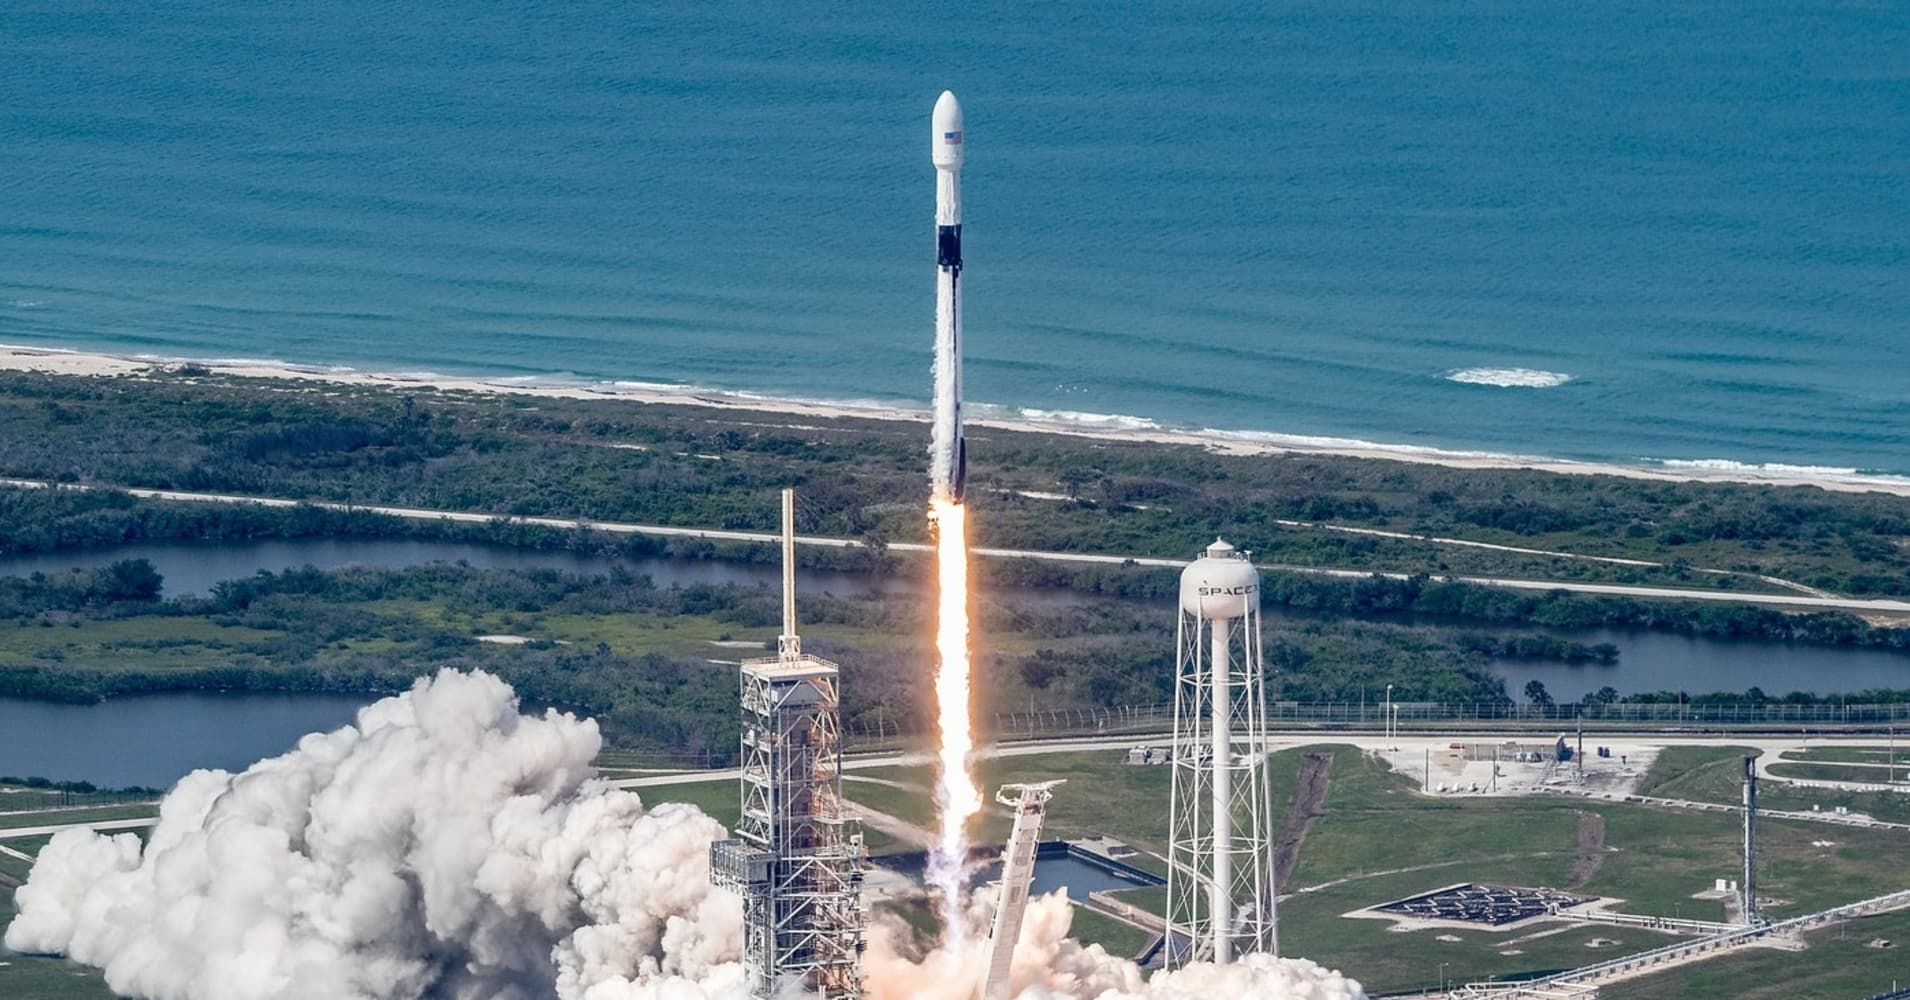 SpaceX planning massive expansion of rocket facilities on Florida's space coast